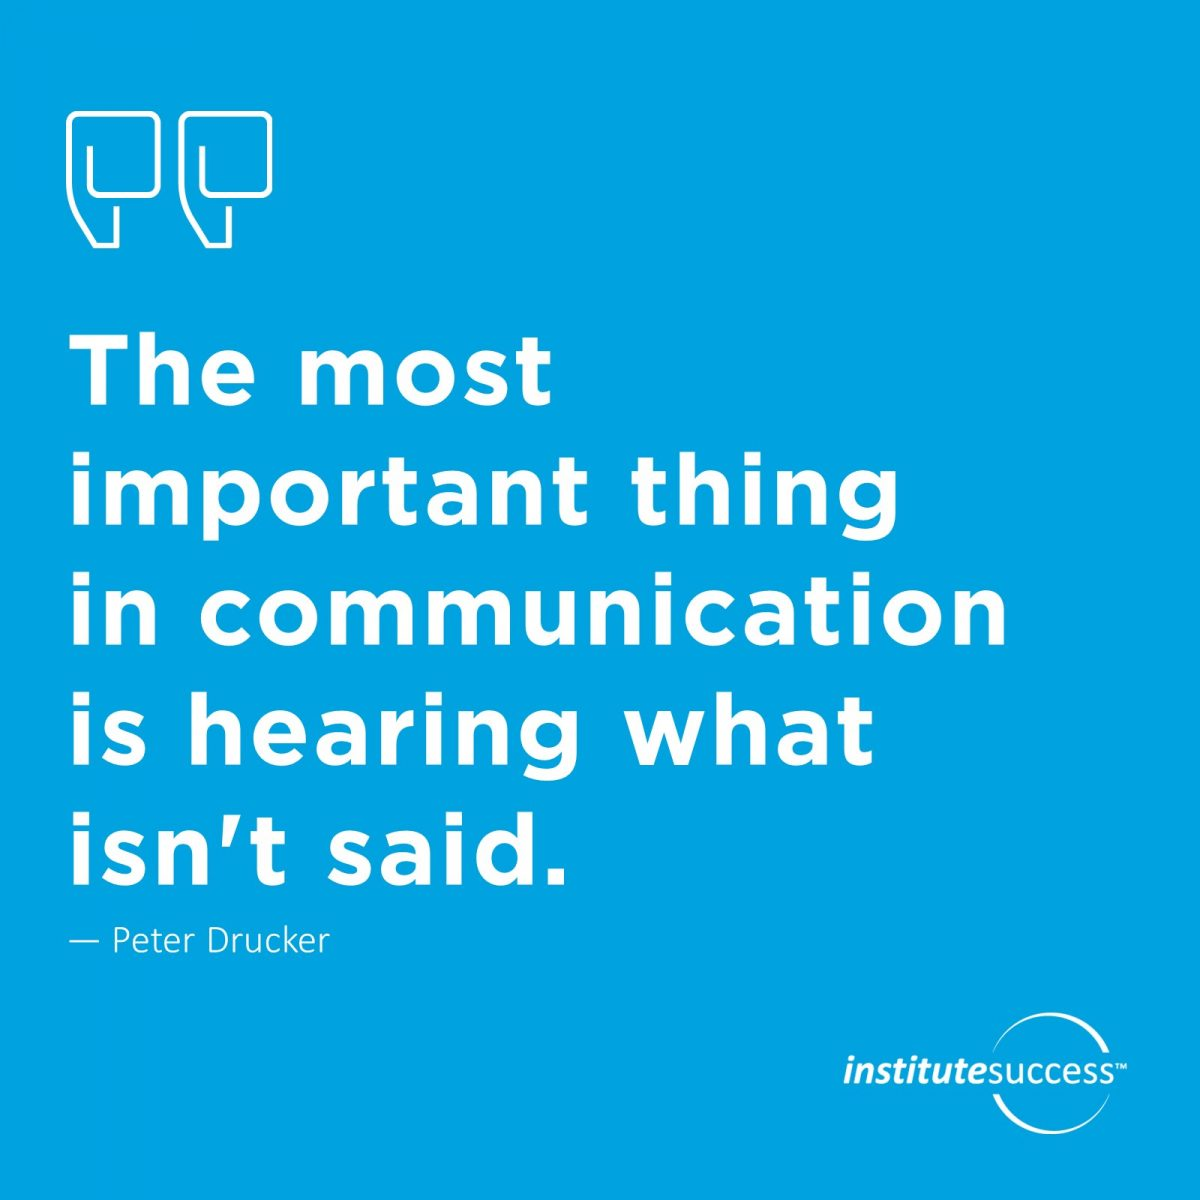 The most important thing in communication is hearing what isn't said. – Peter Drucker